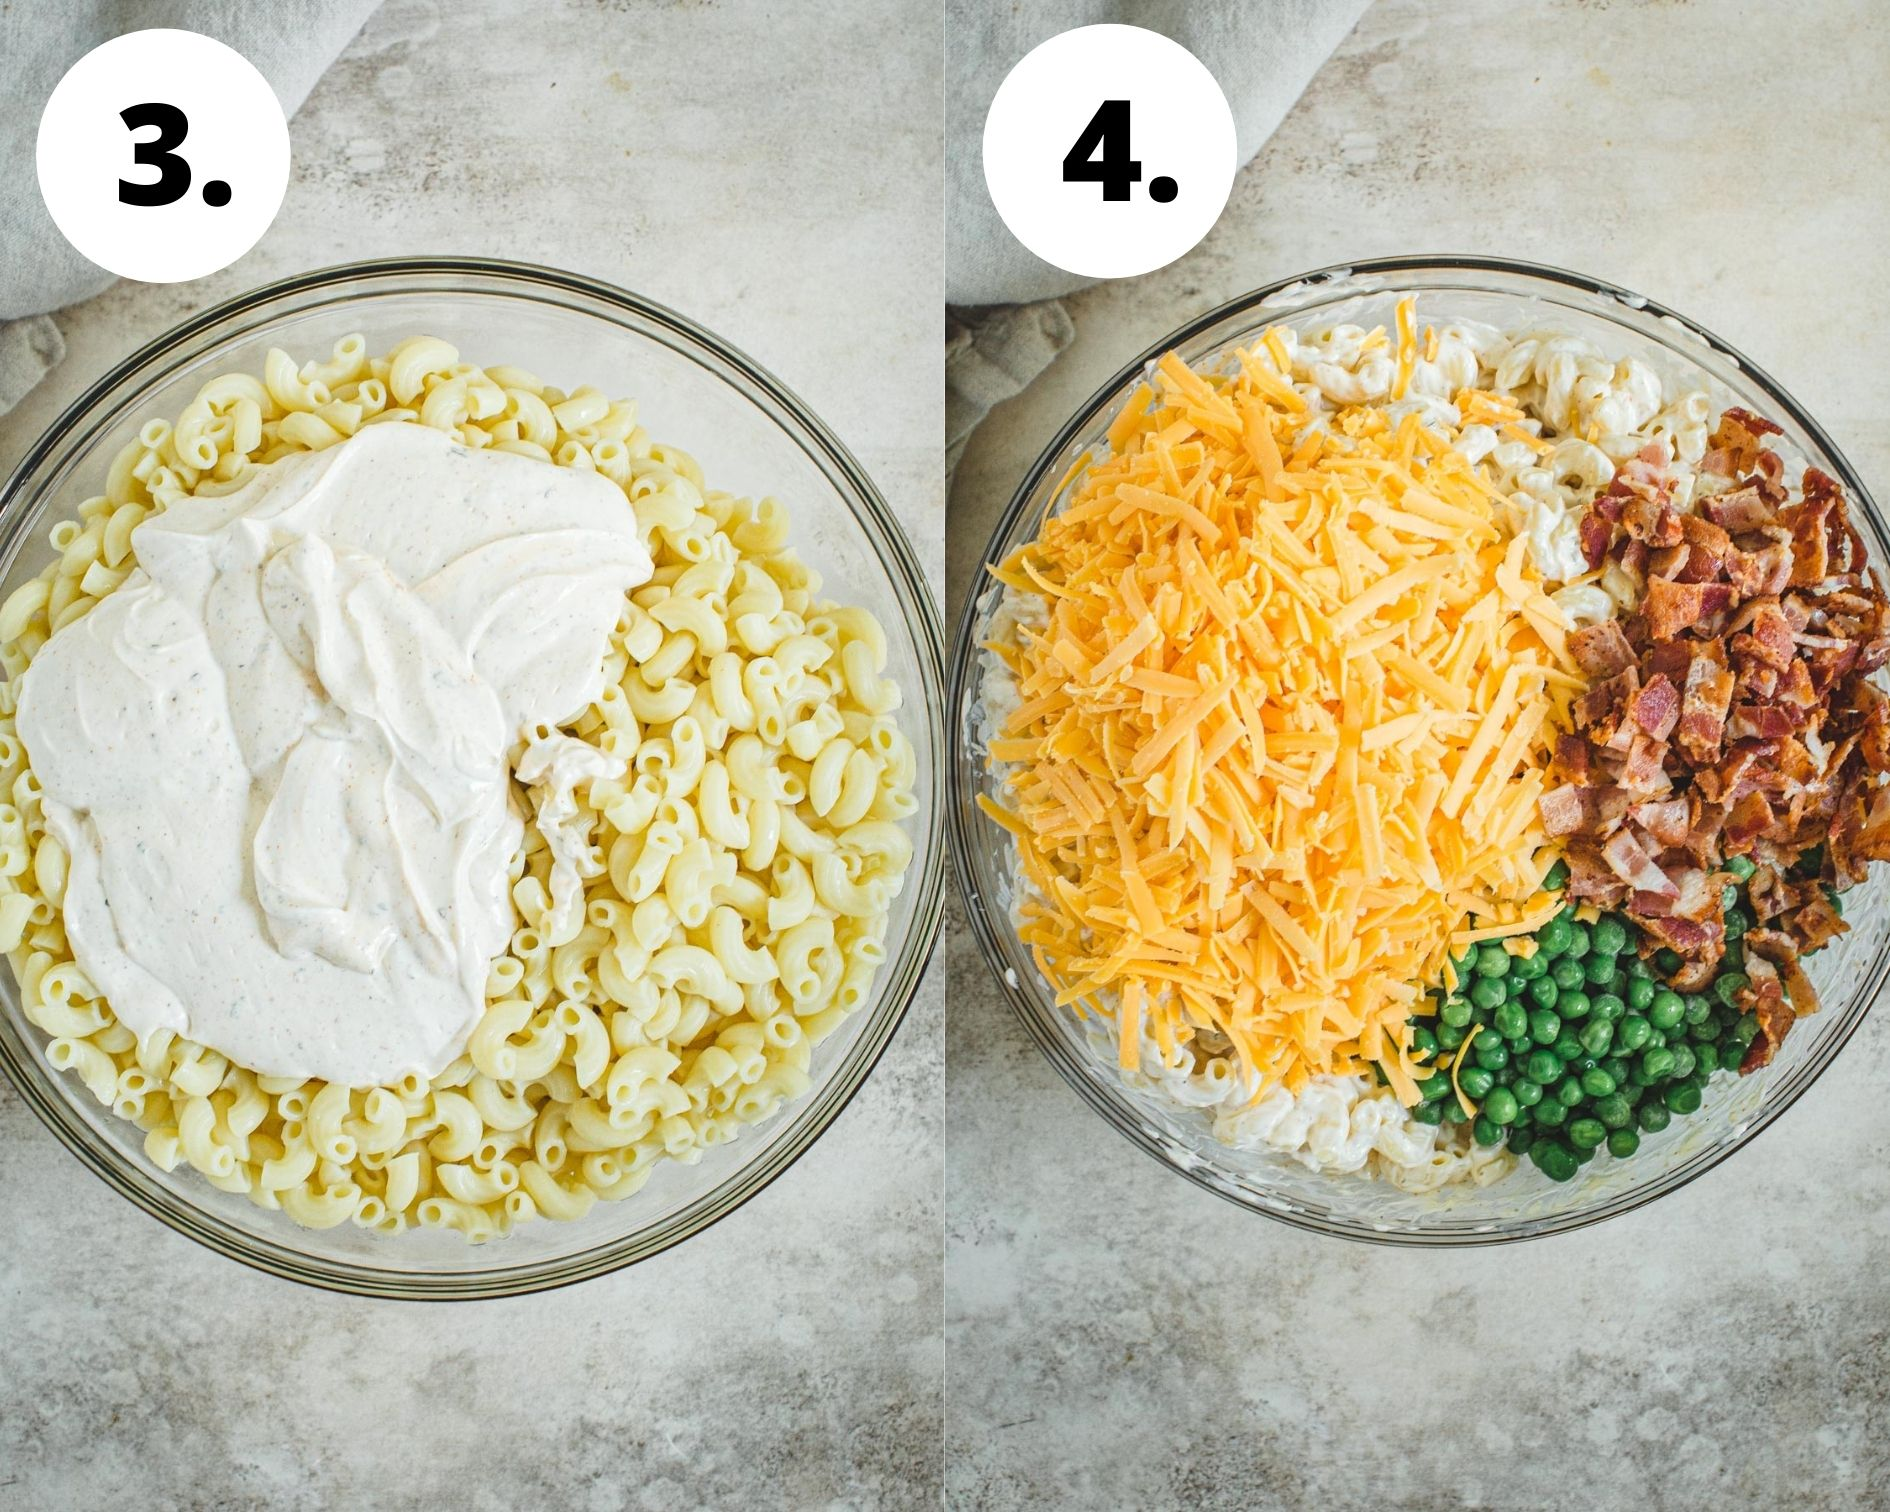 Process steps 3 and 4 for making bacon ranch pasta salad.